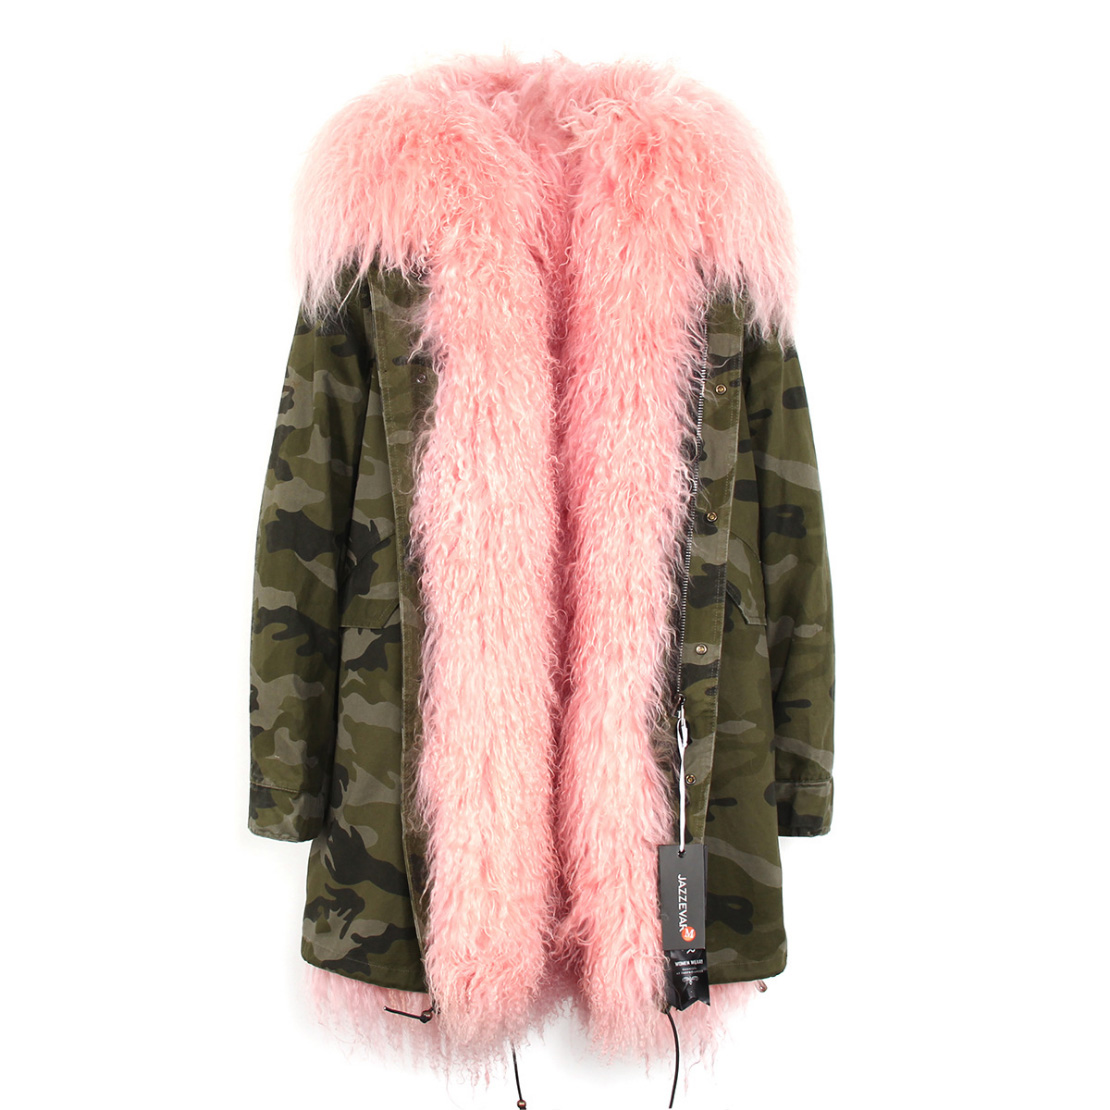 Tibet Sheep Fur Hooded Parka 119 Details 4